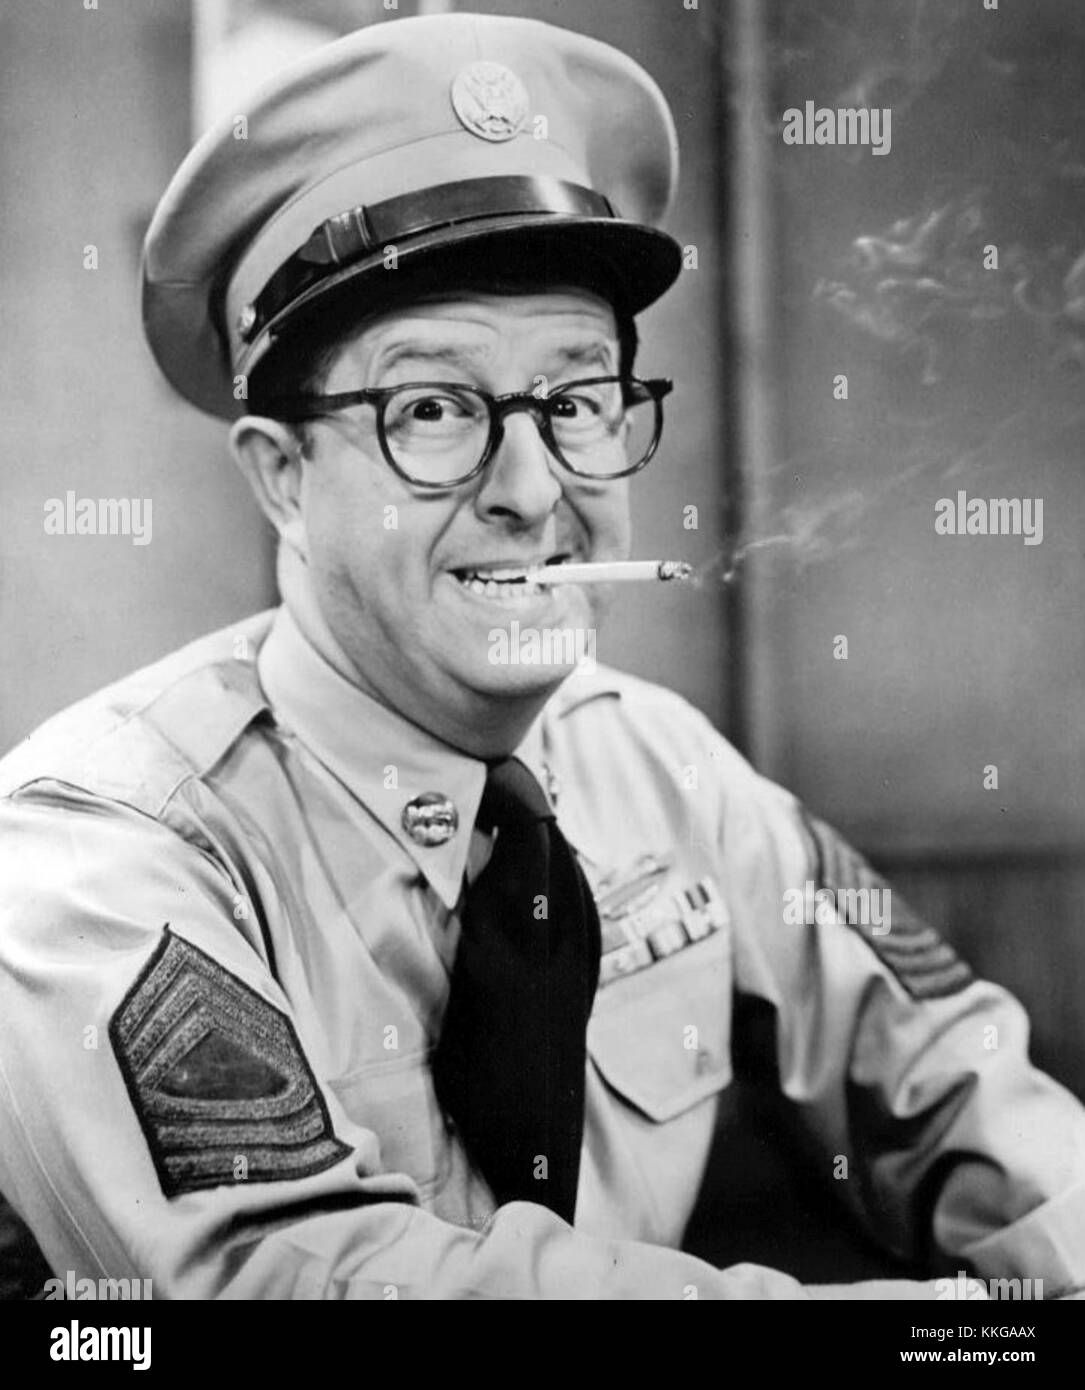 Phil silvers as bilko - Stock Image